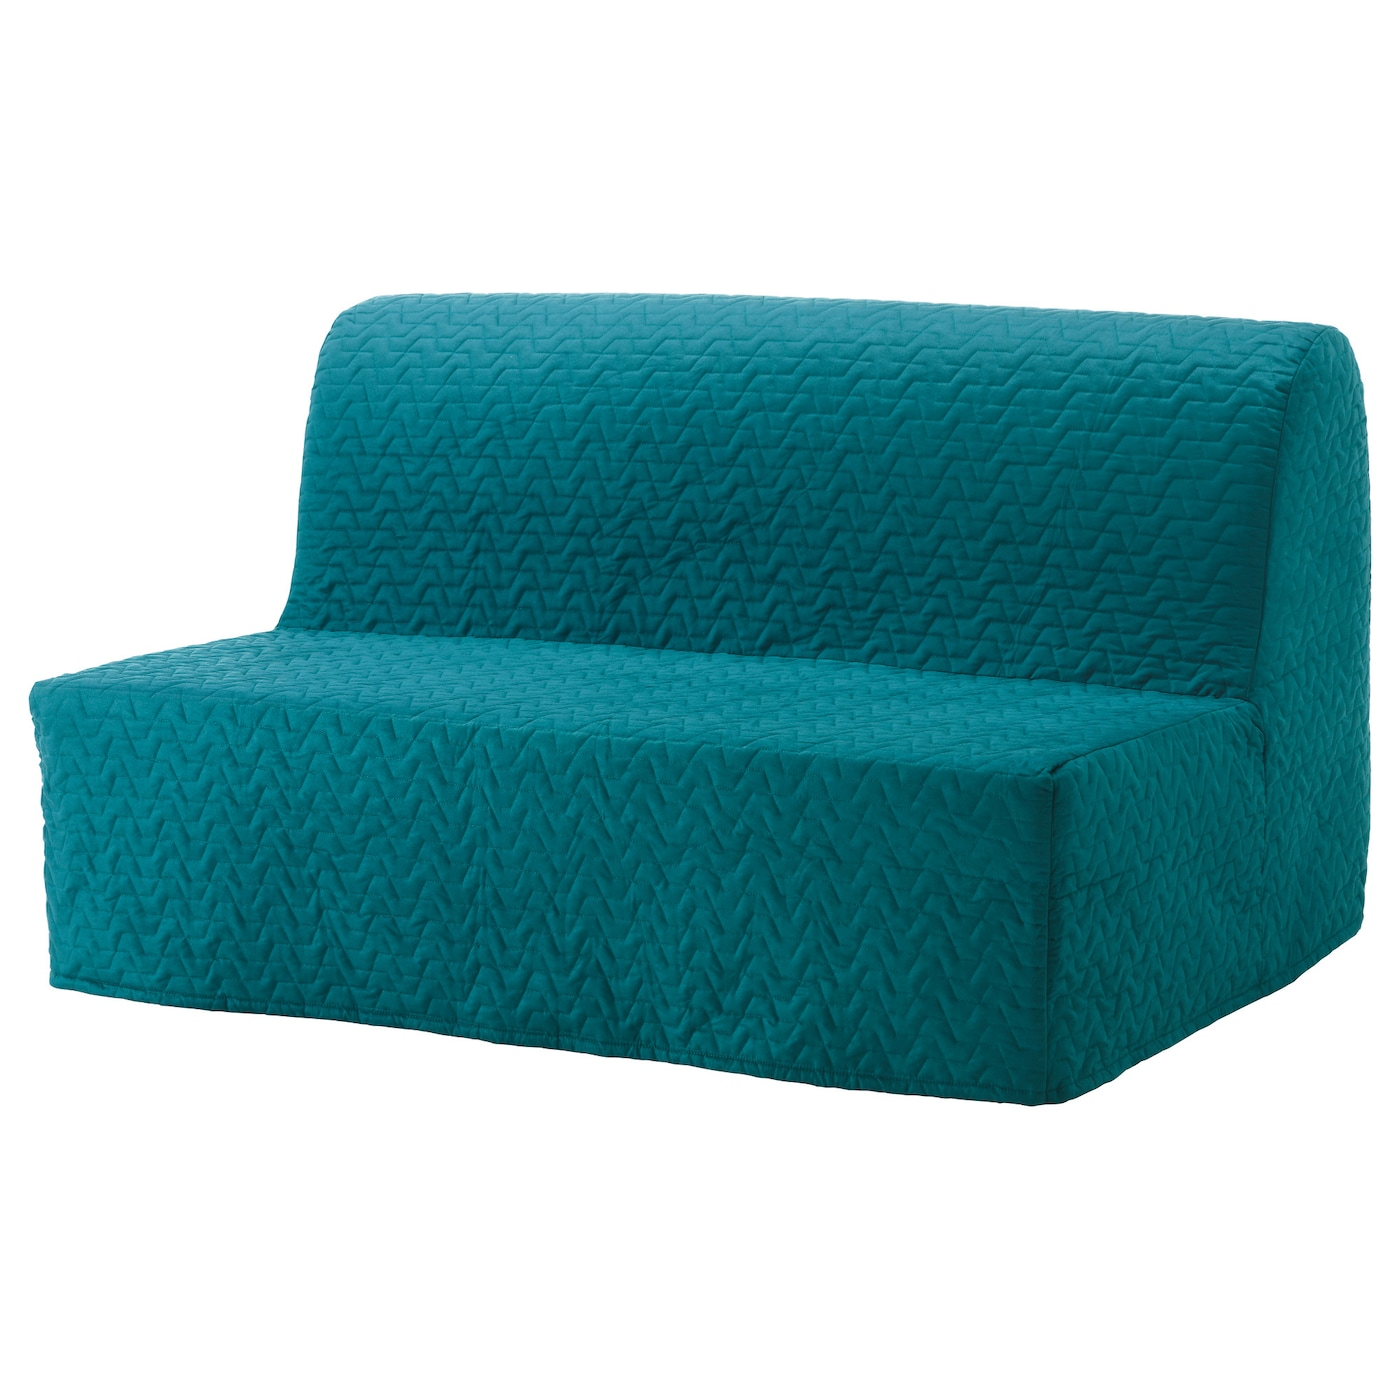 LYCKSELE HÅVET Two Seat Sofa Bed, Vallarum Turquoise